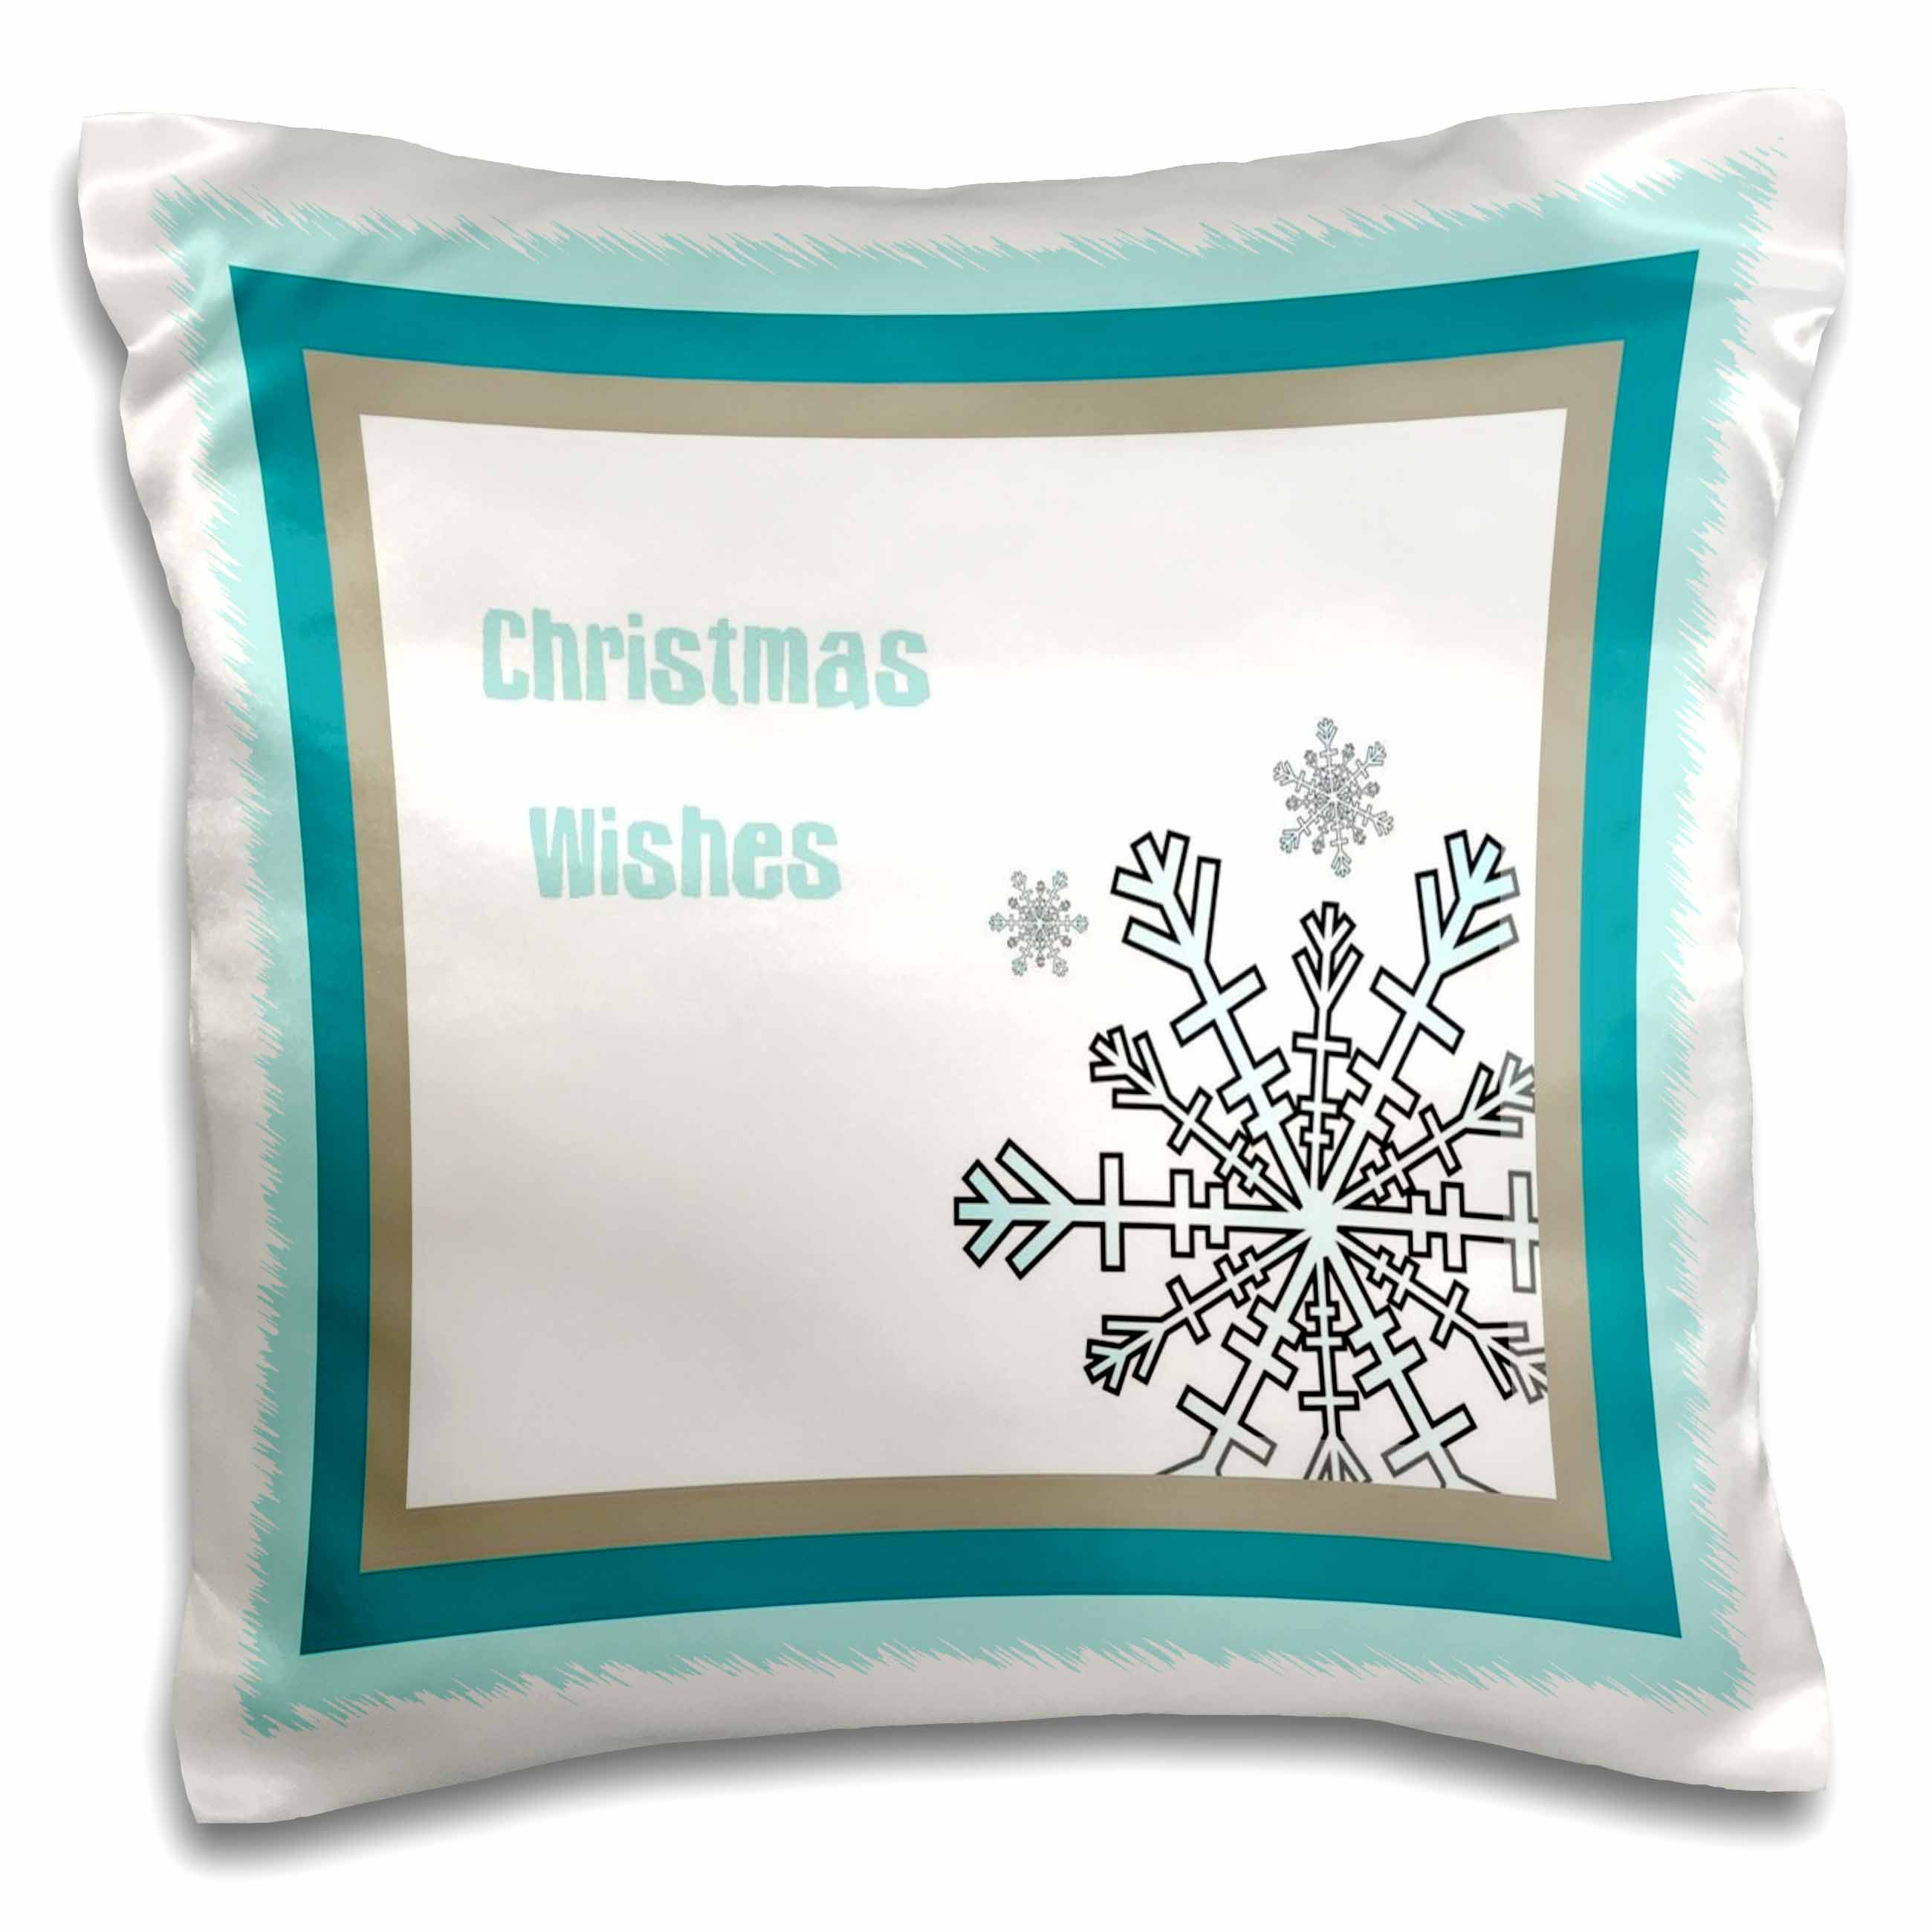 3dRose Merry Christmas A Christmas greeting card with a teal snowflake and teal border, Pillow Case, 16 by 16-inch